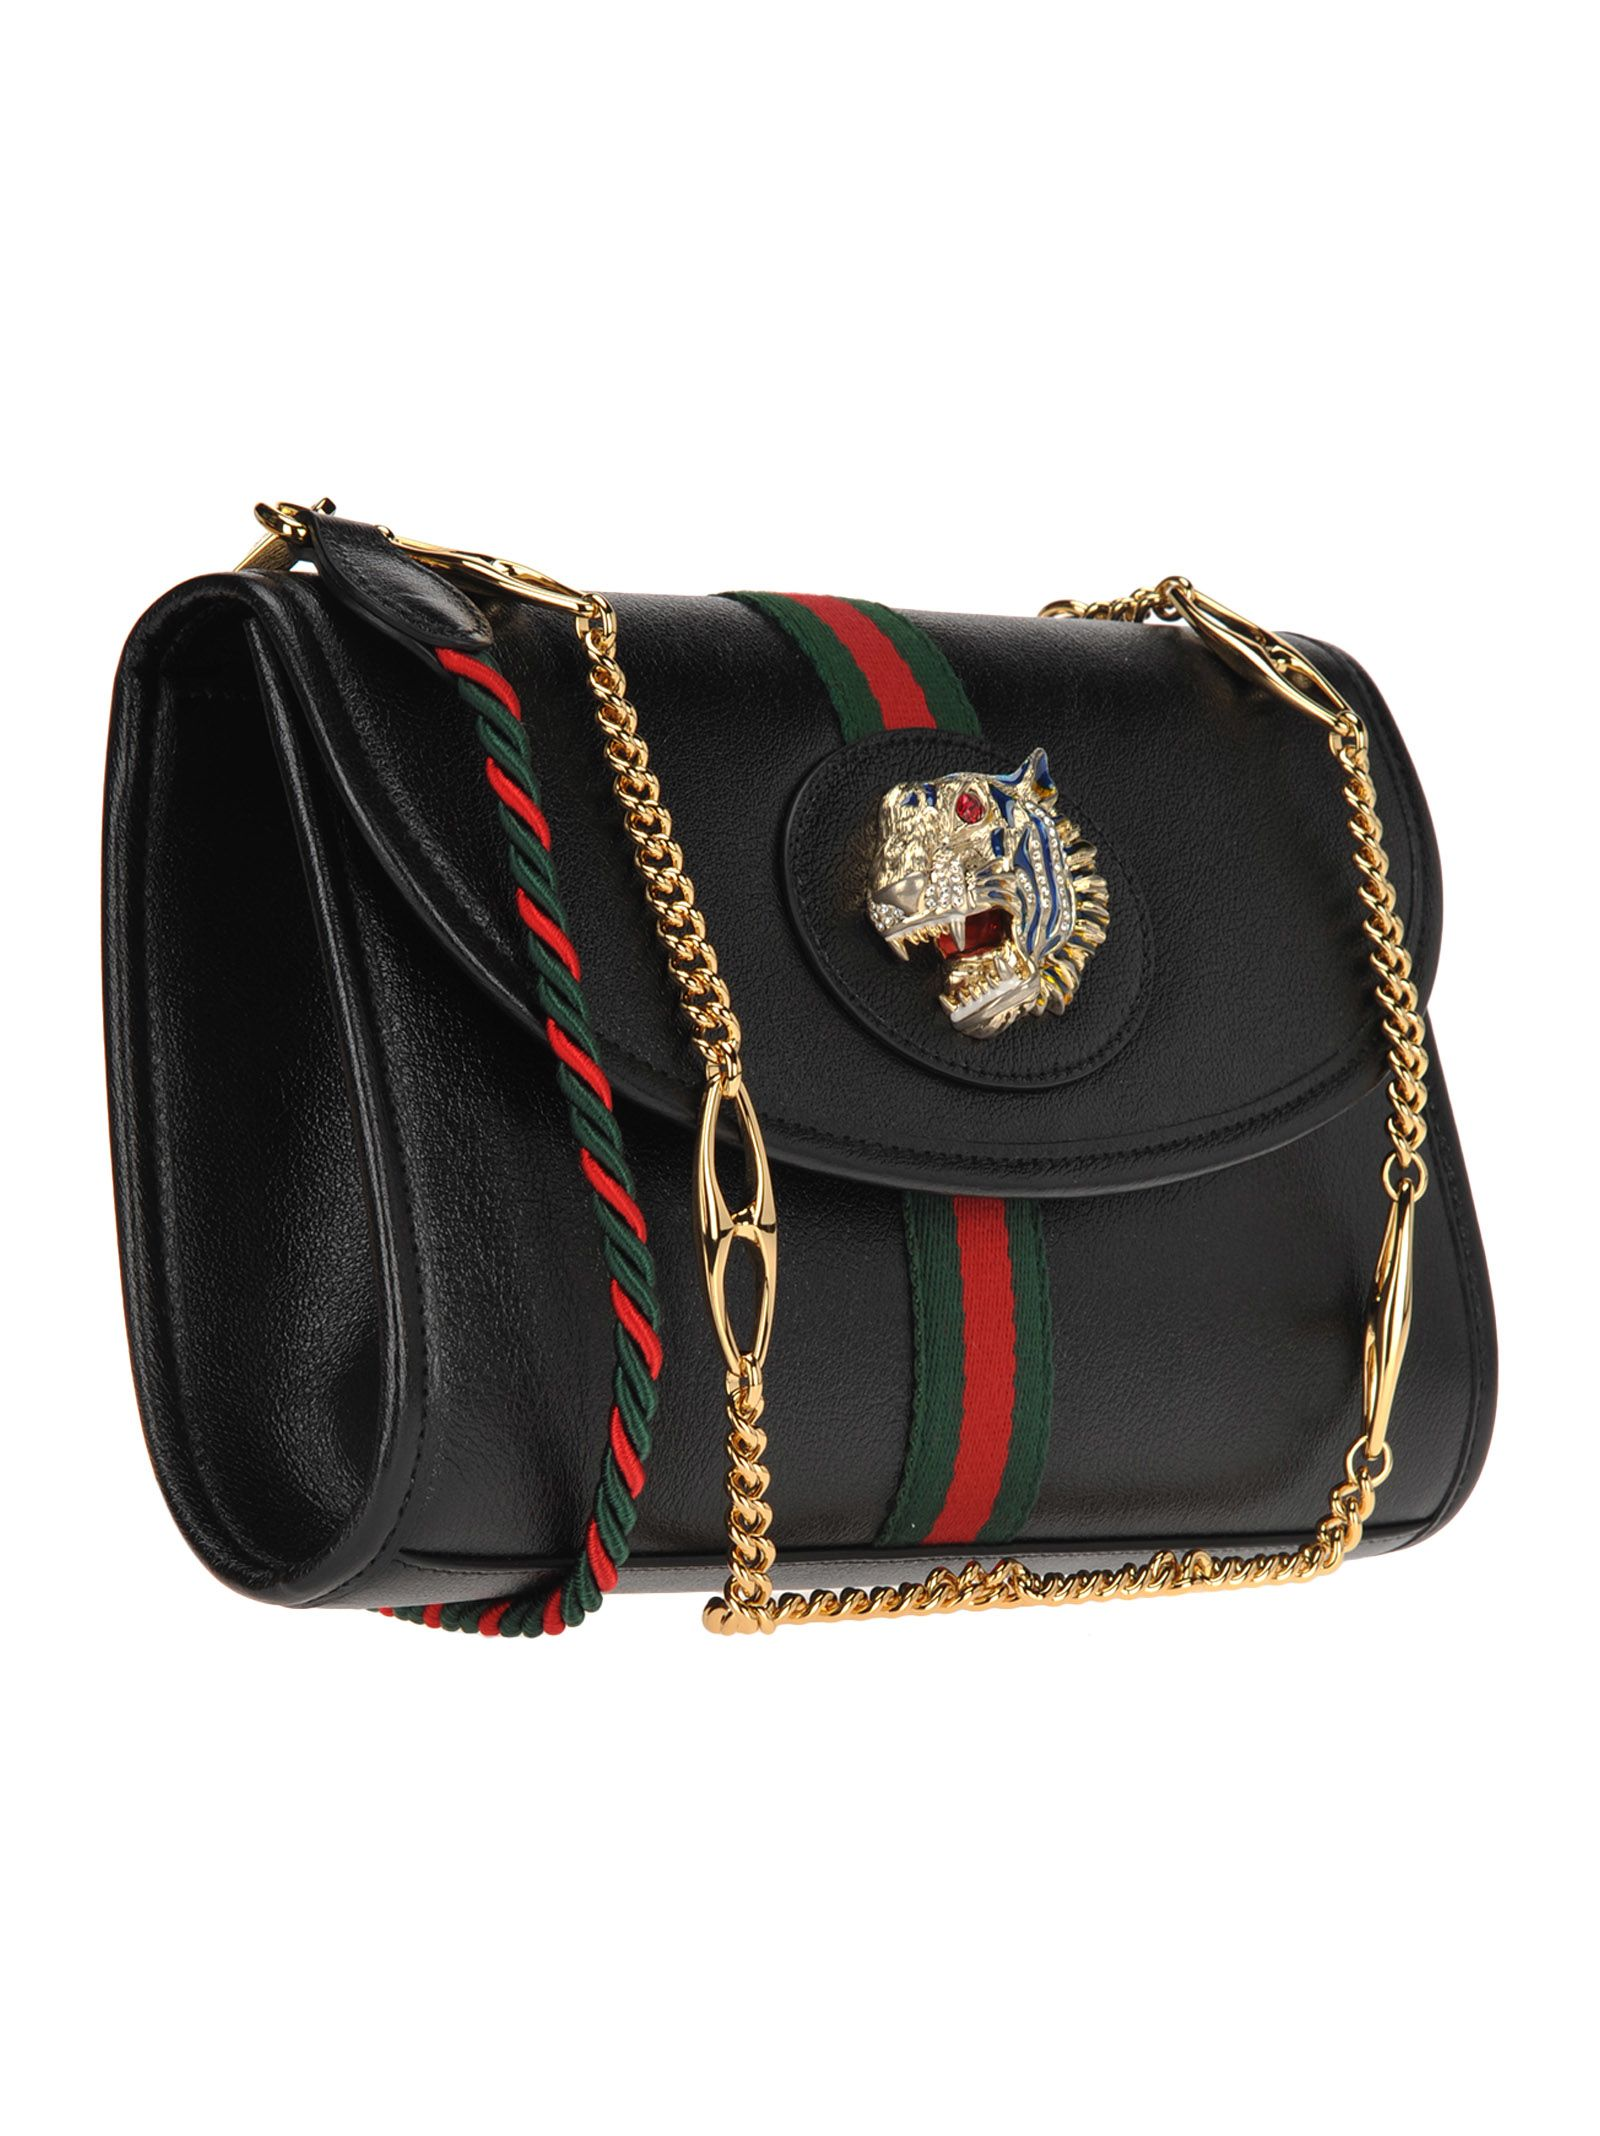 0fa65e708815 Gucci Gucci Small Shoulder Bag Rajah Web - BLACK + WEB - 10923834 ...